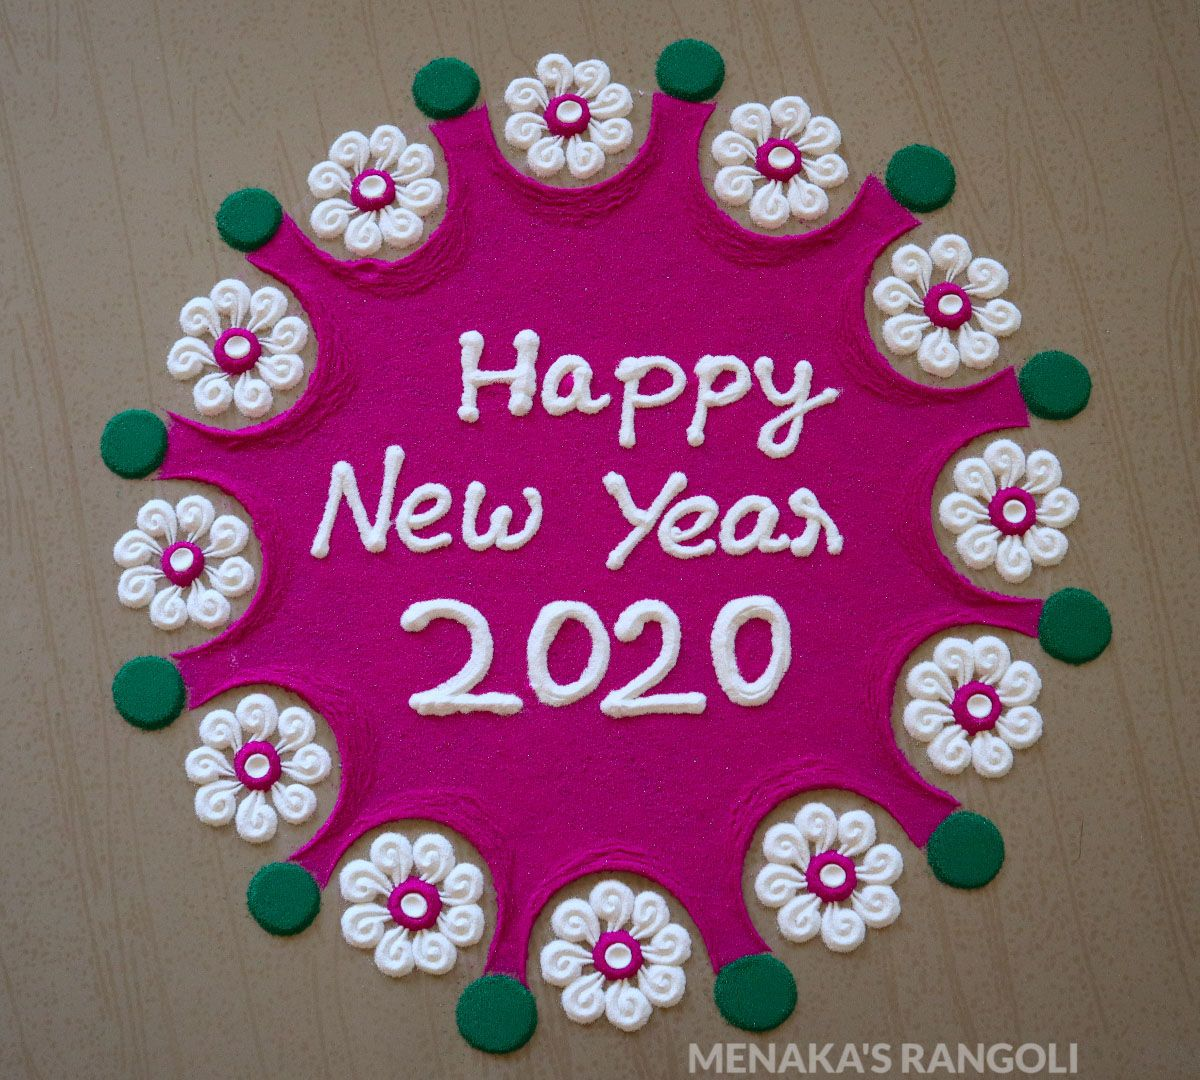 Pin by Menaka's Rangoli on Color Rangoli Designs Rangoli